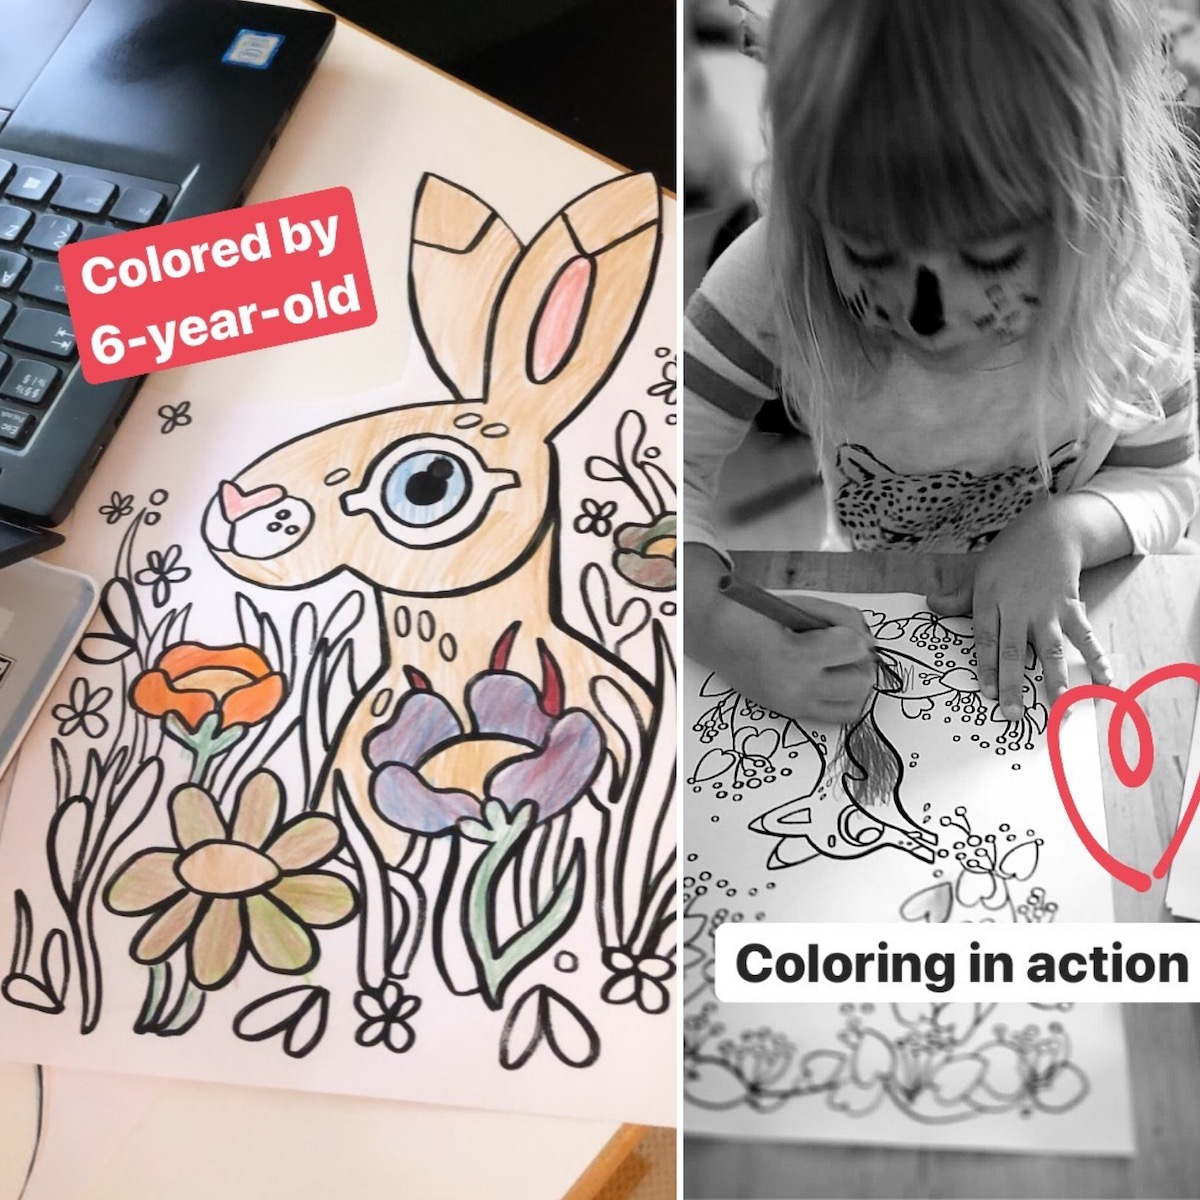 Printable Digital Coloring Pages for kids: animals, bunnies and other cute creatures.